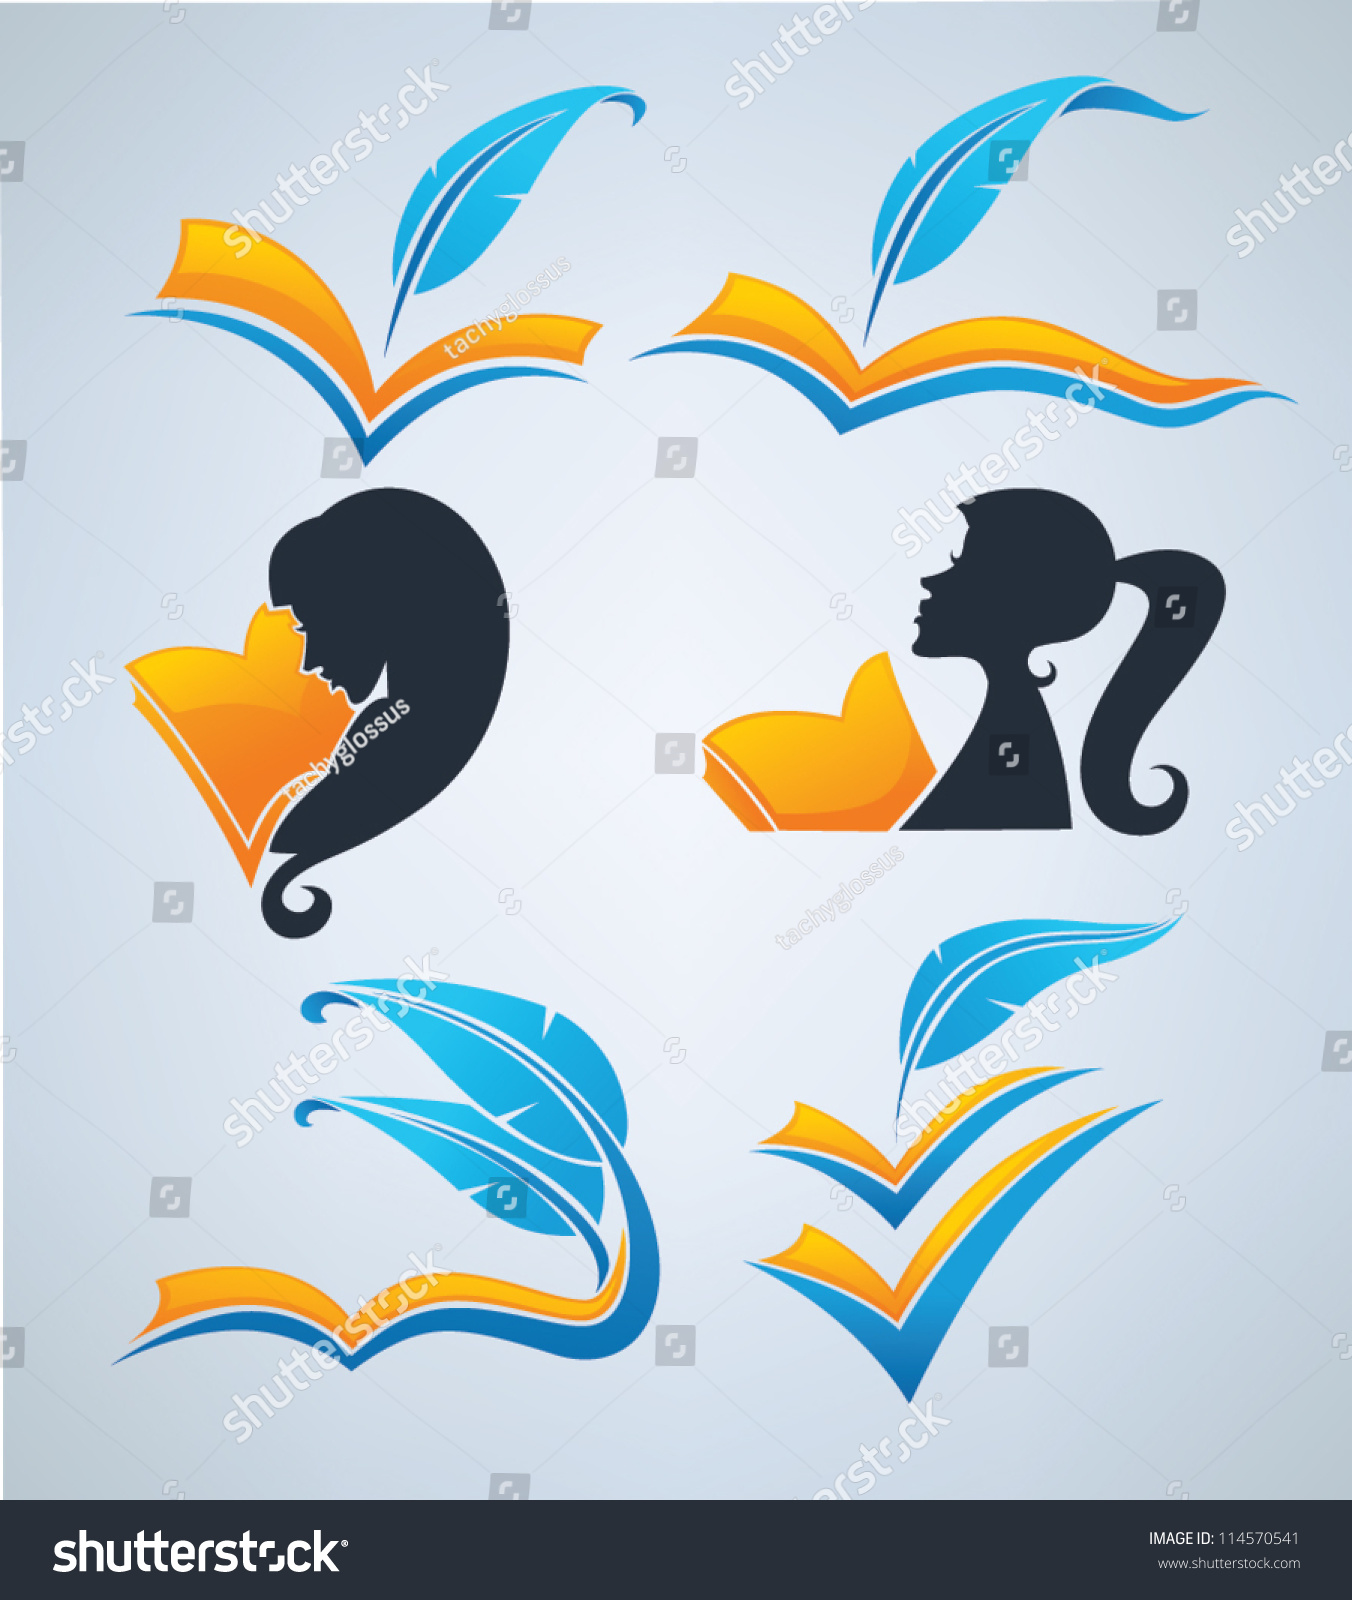 what is a symbol in literature news icons world globe symbols open  a symbol in literature literature reading writing poetry vector collection stock vector